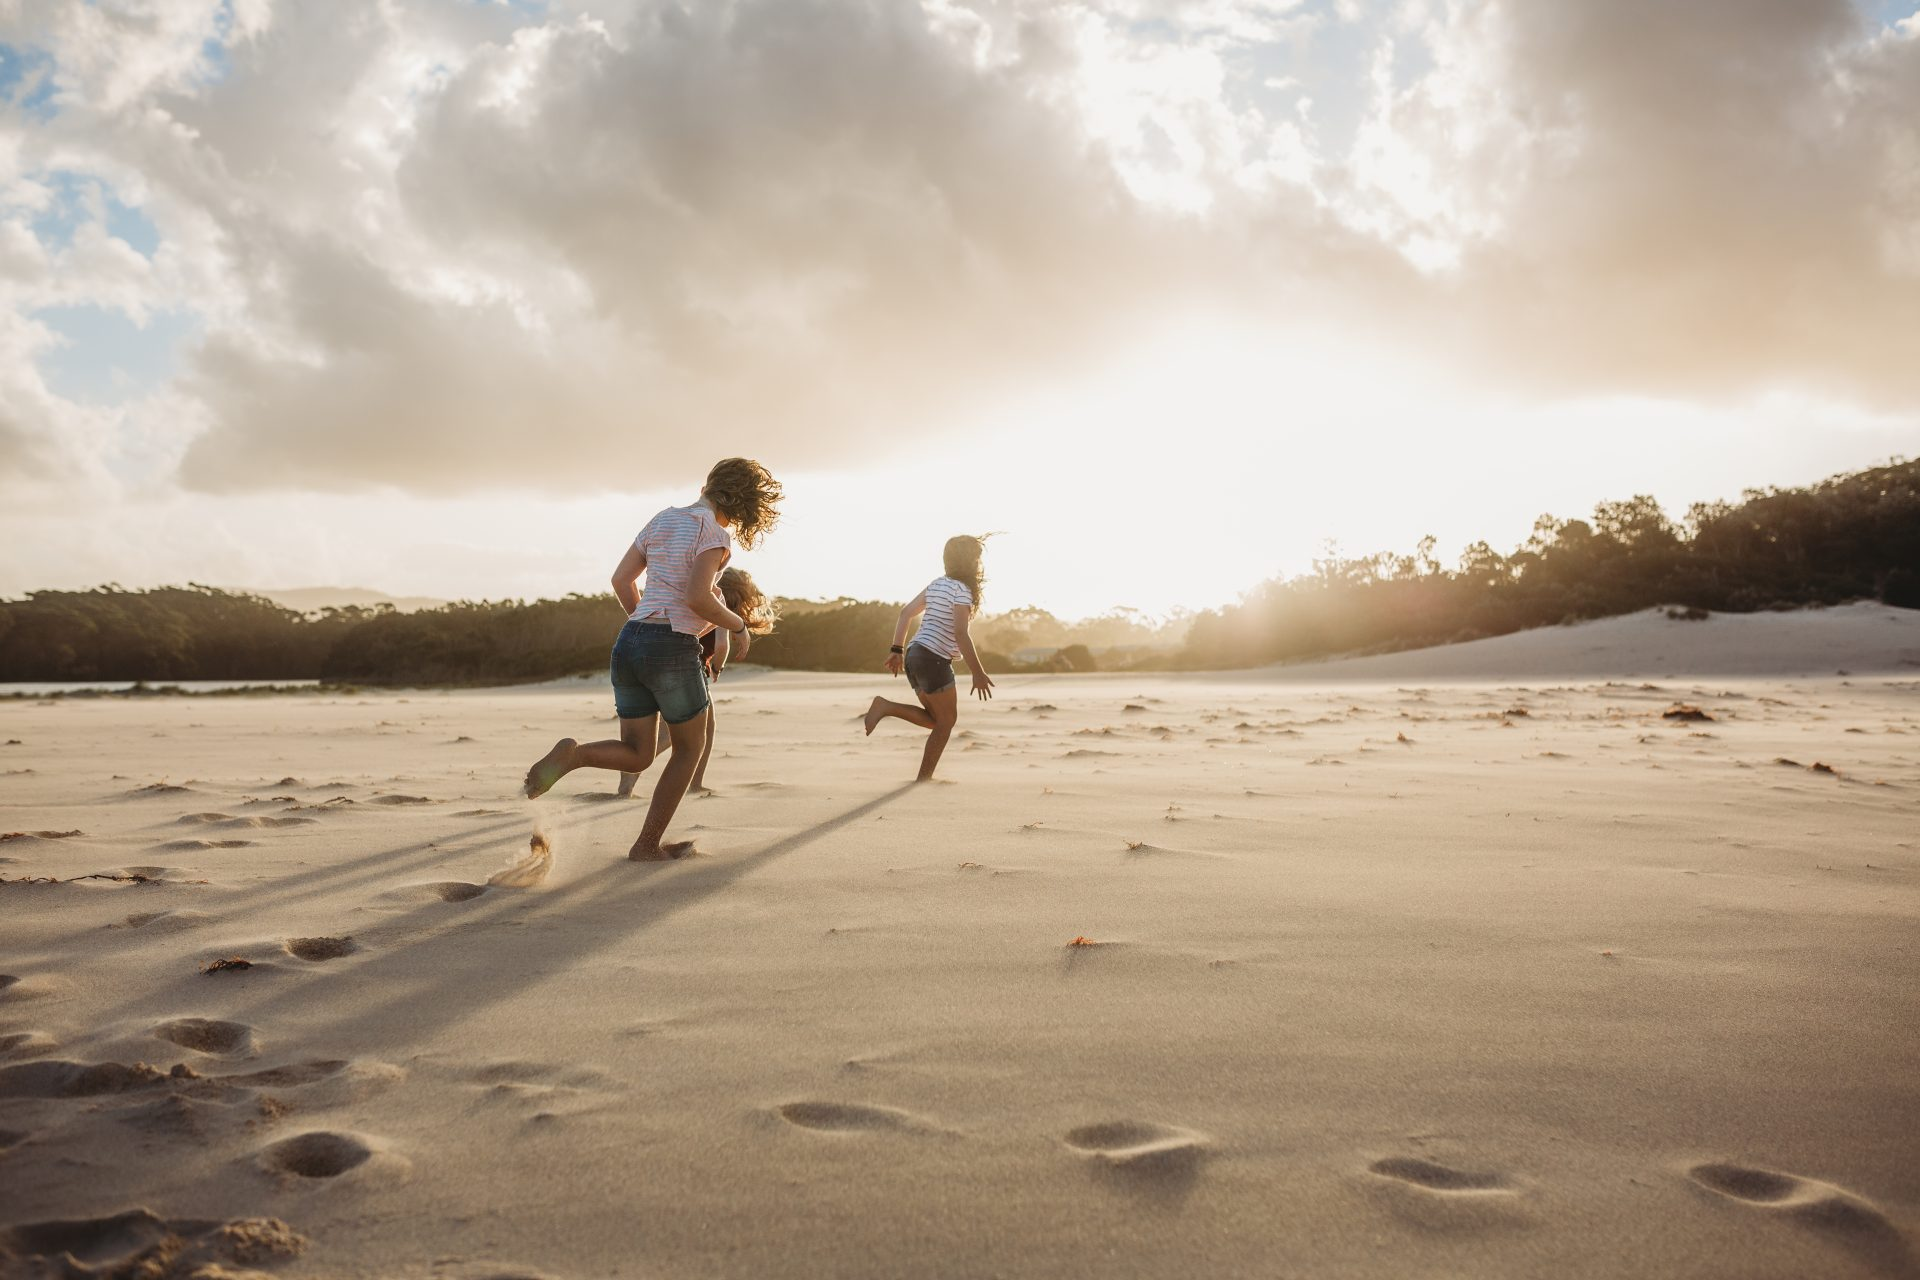 Young kids running along the beach at sunset